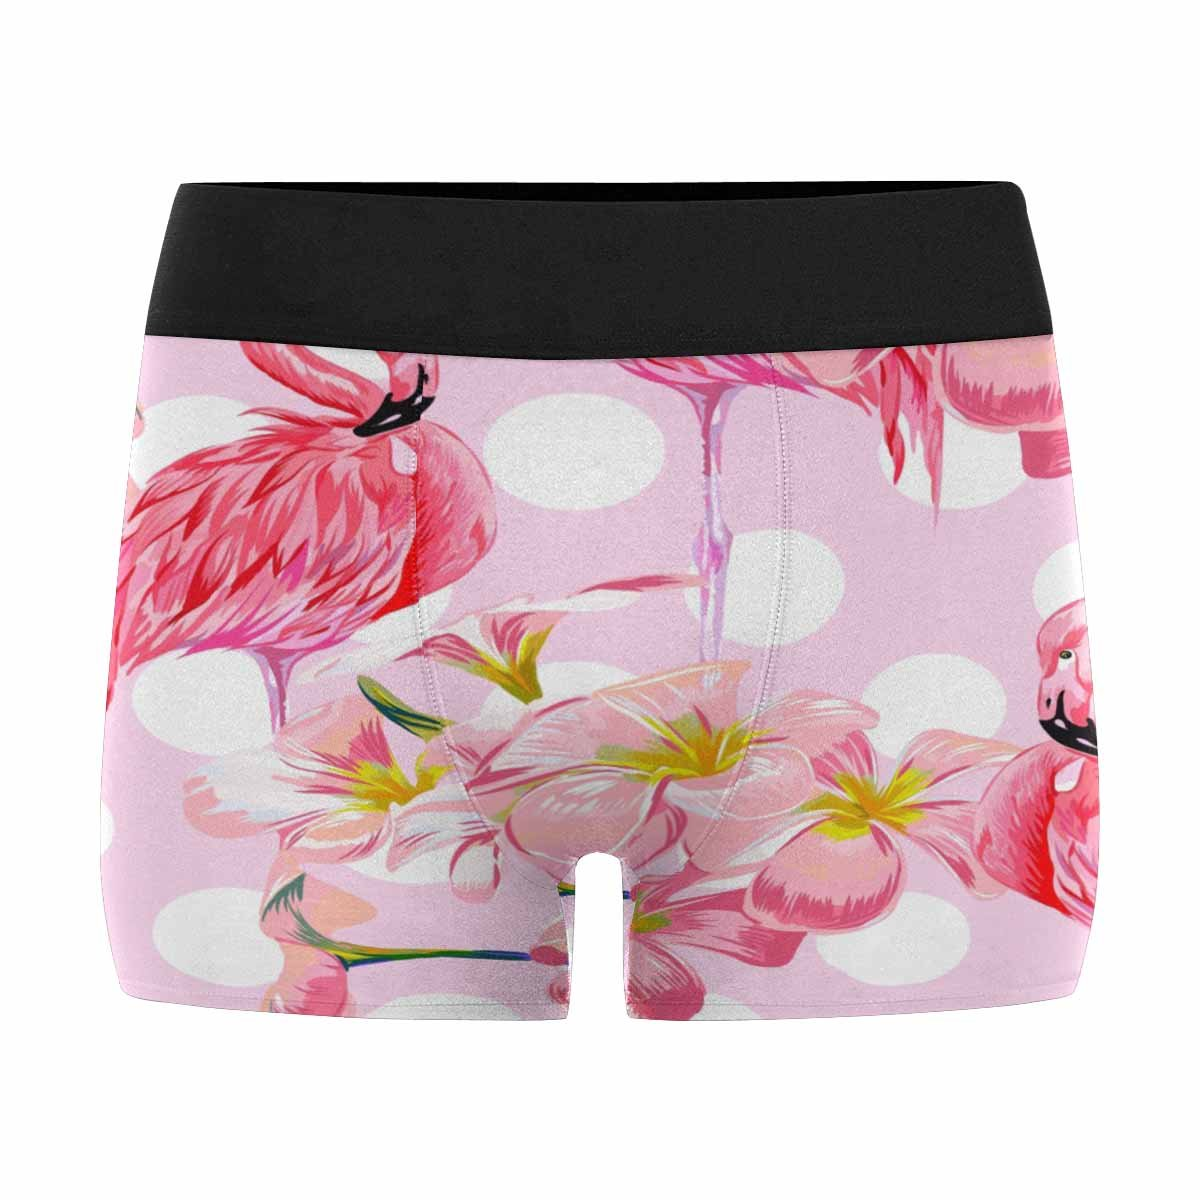 XS-3XL Tropical Flowers INTERESTPRINT Mens Boxer Briefs Beautiful Floral Pattern with Pink Flamingos Polka Dot